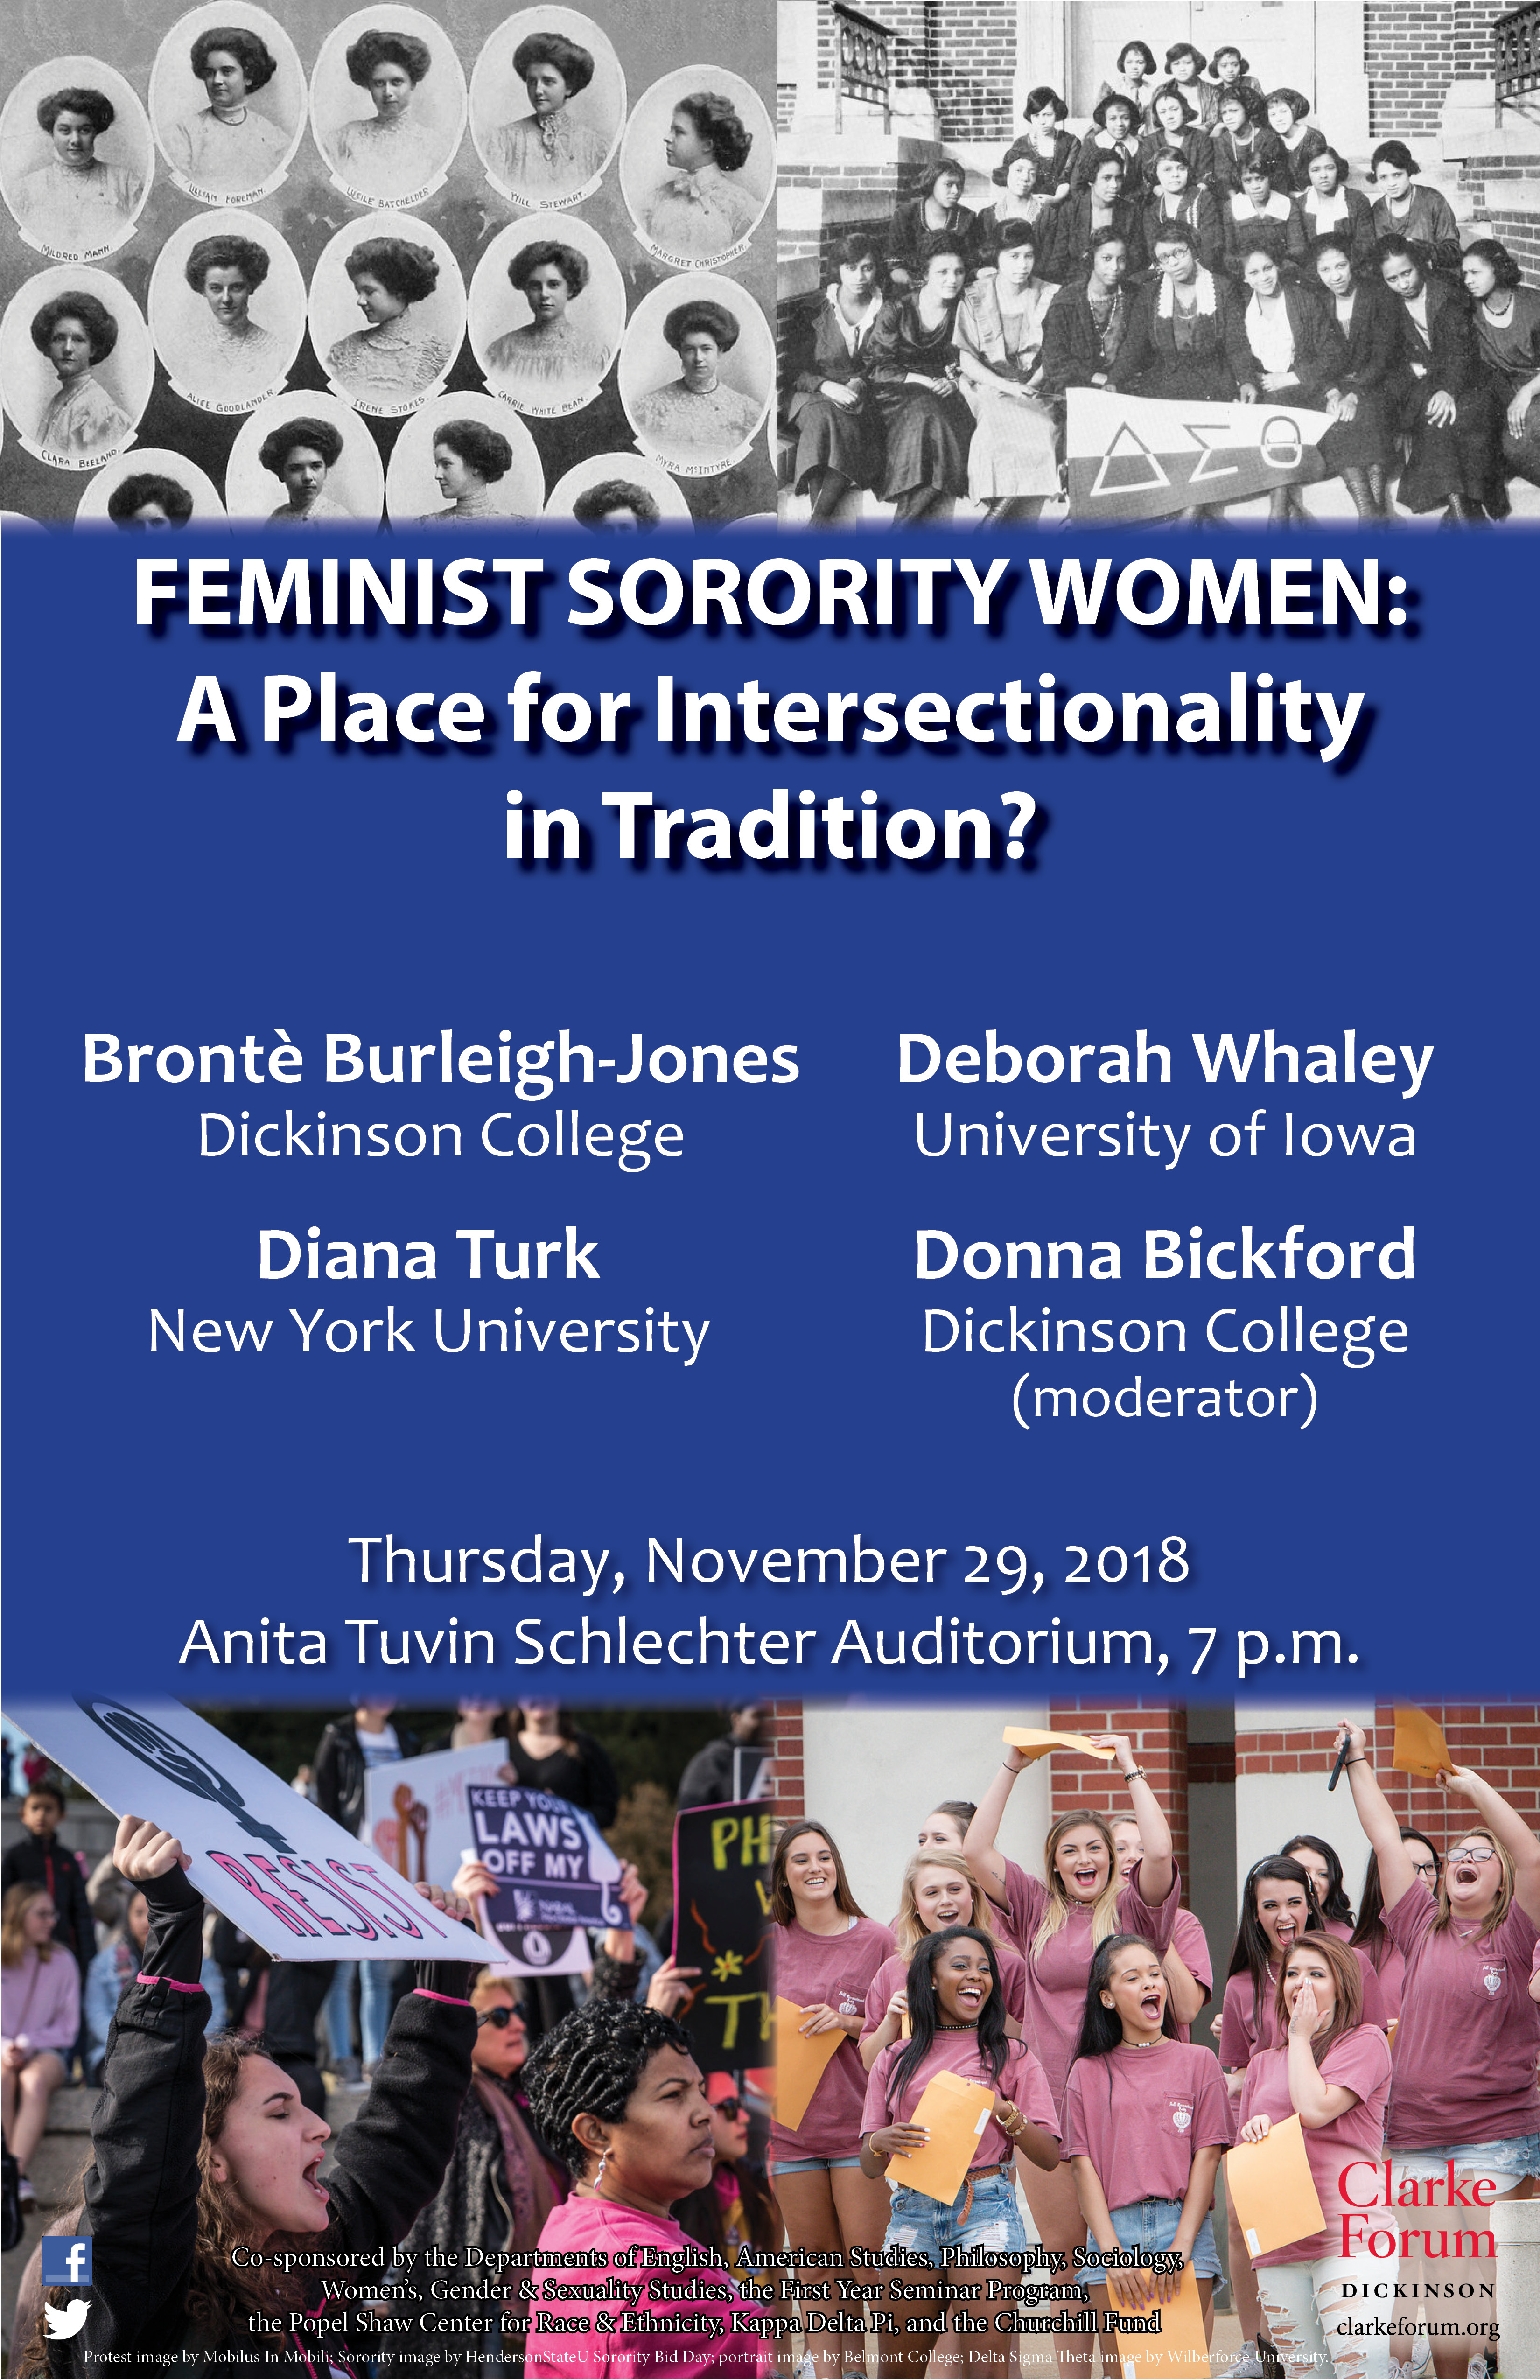 Feminist Sorority Women: A Place for Intersectionality in Tradition?